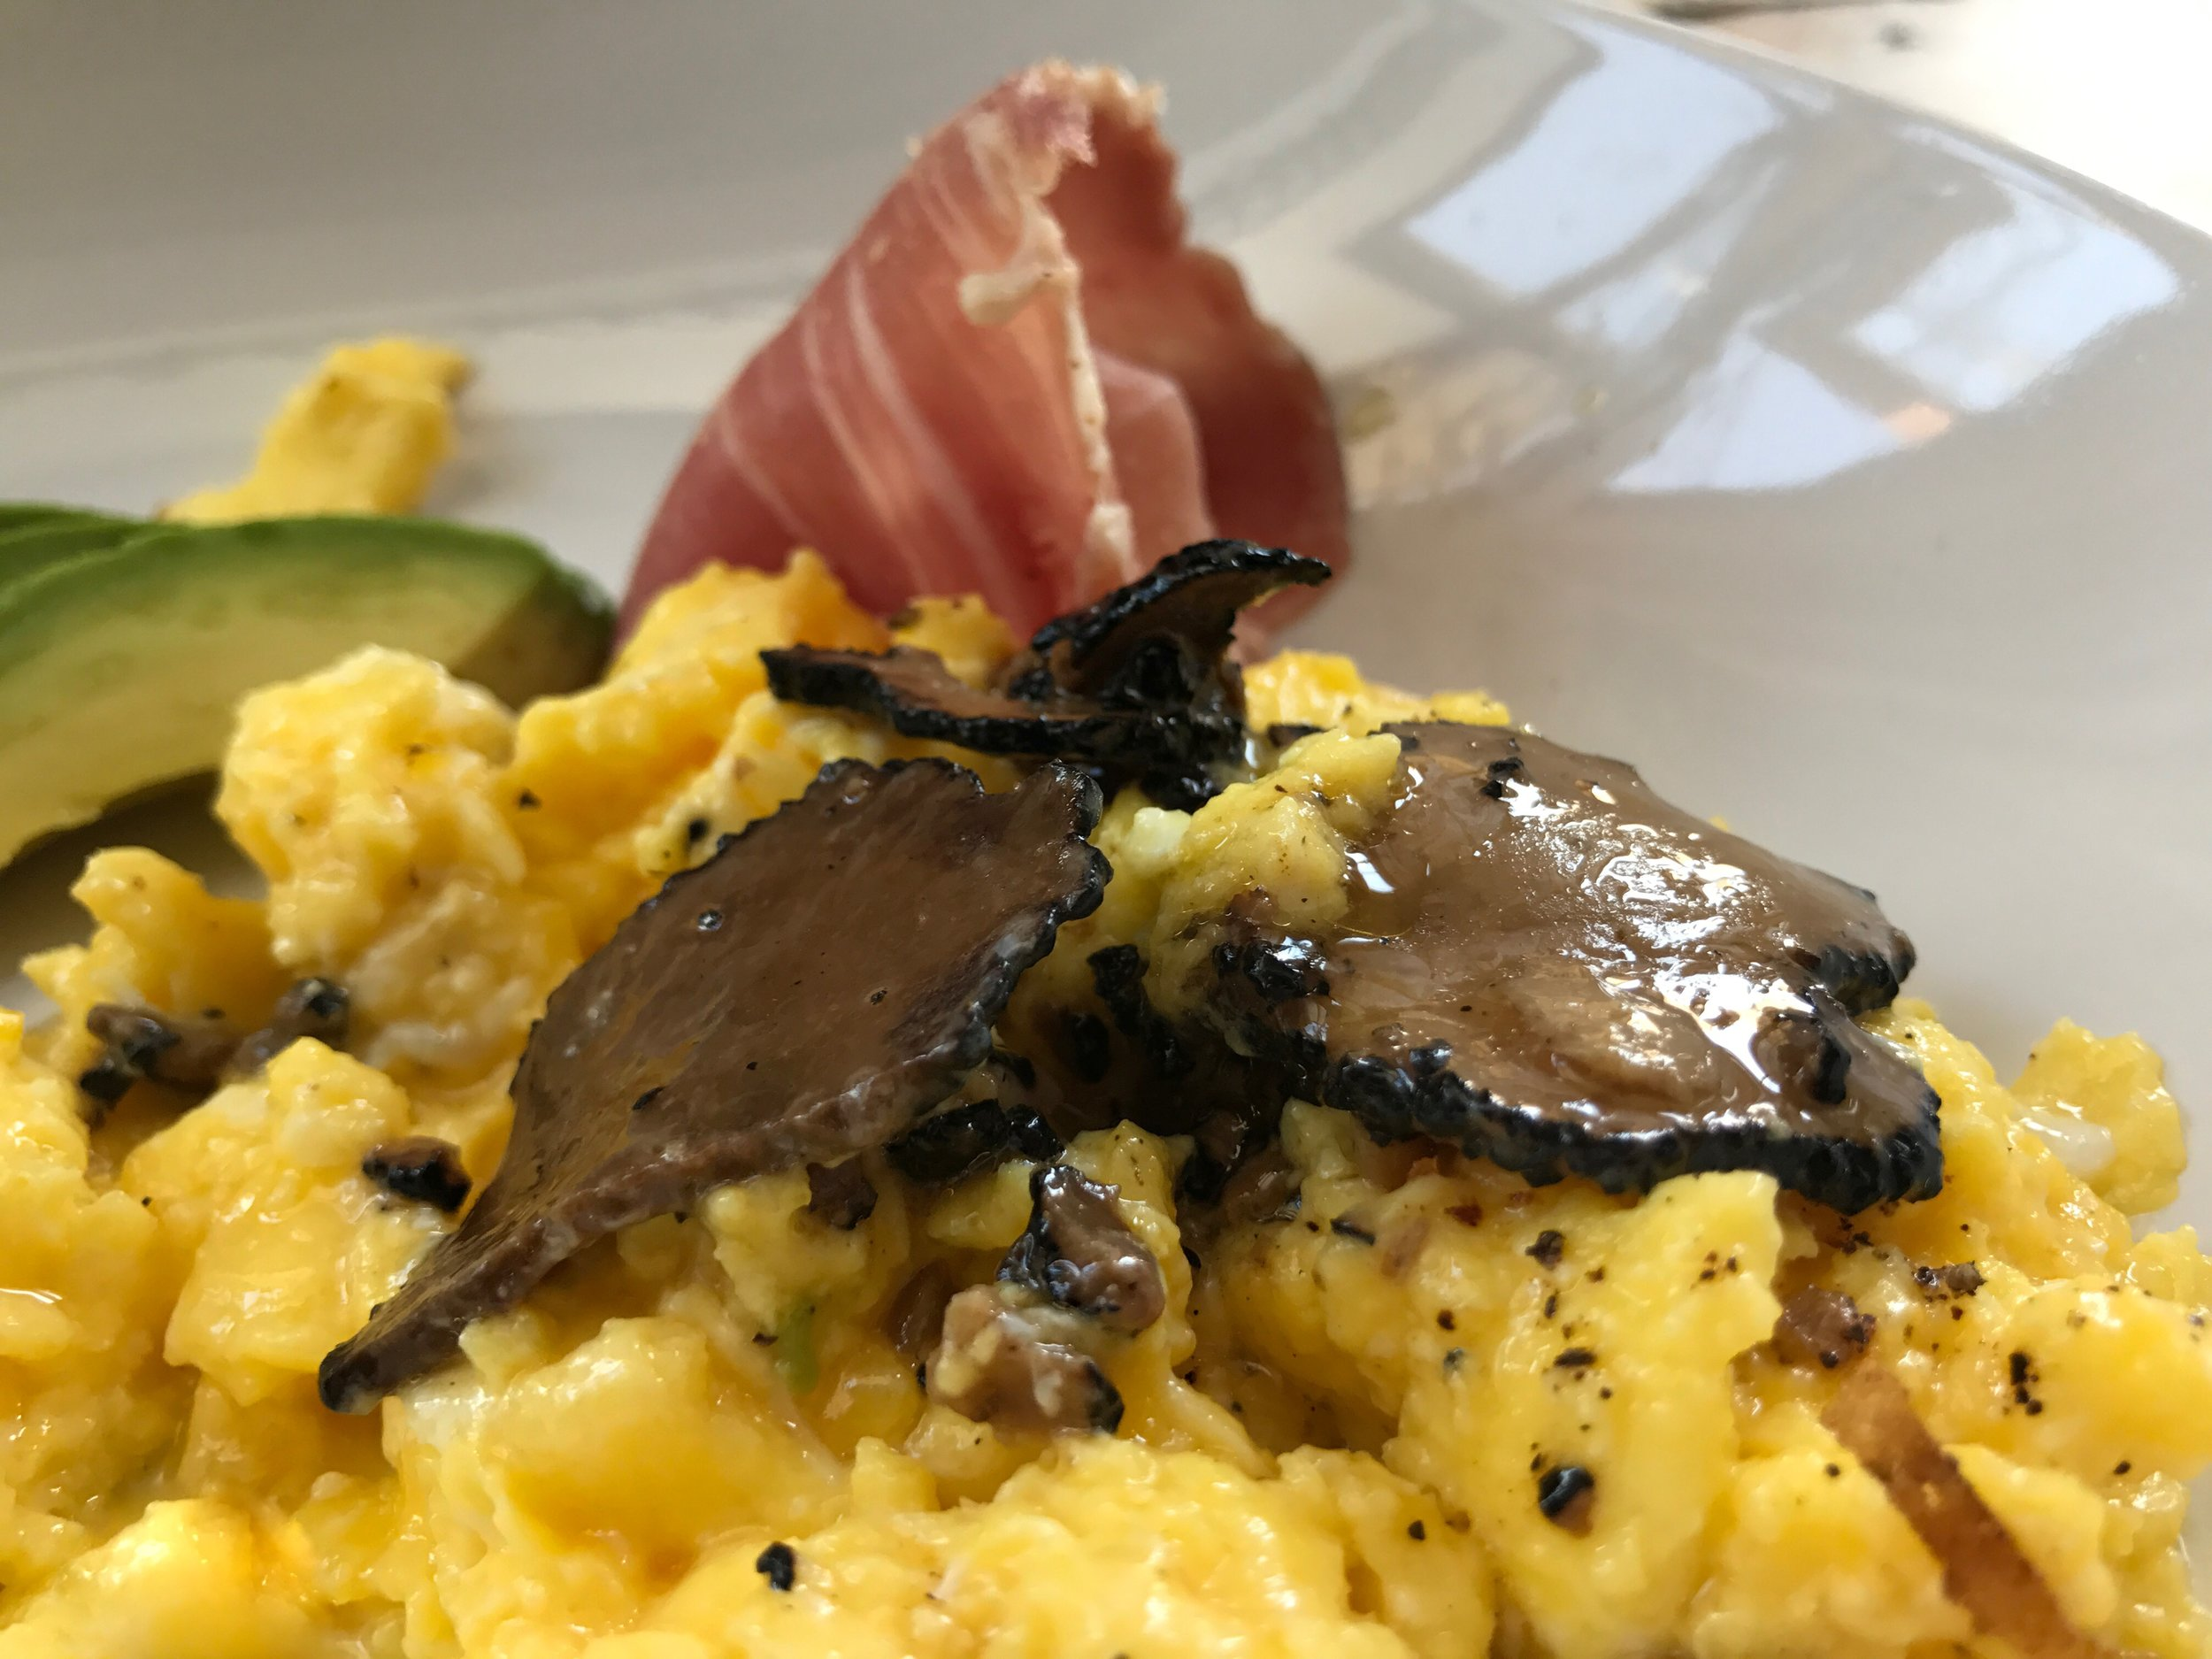 Matt got truffle eggs, and was not disappointed.